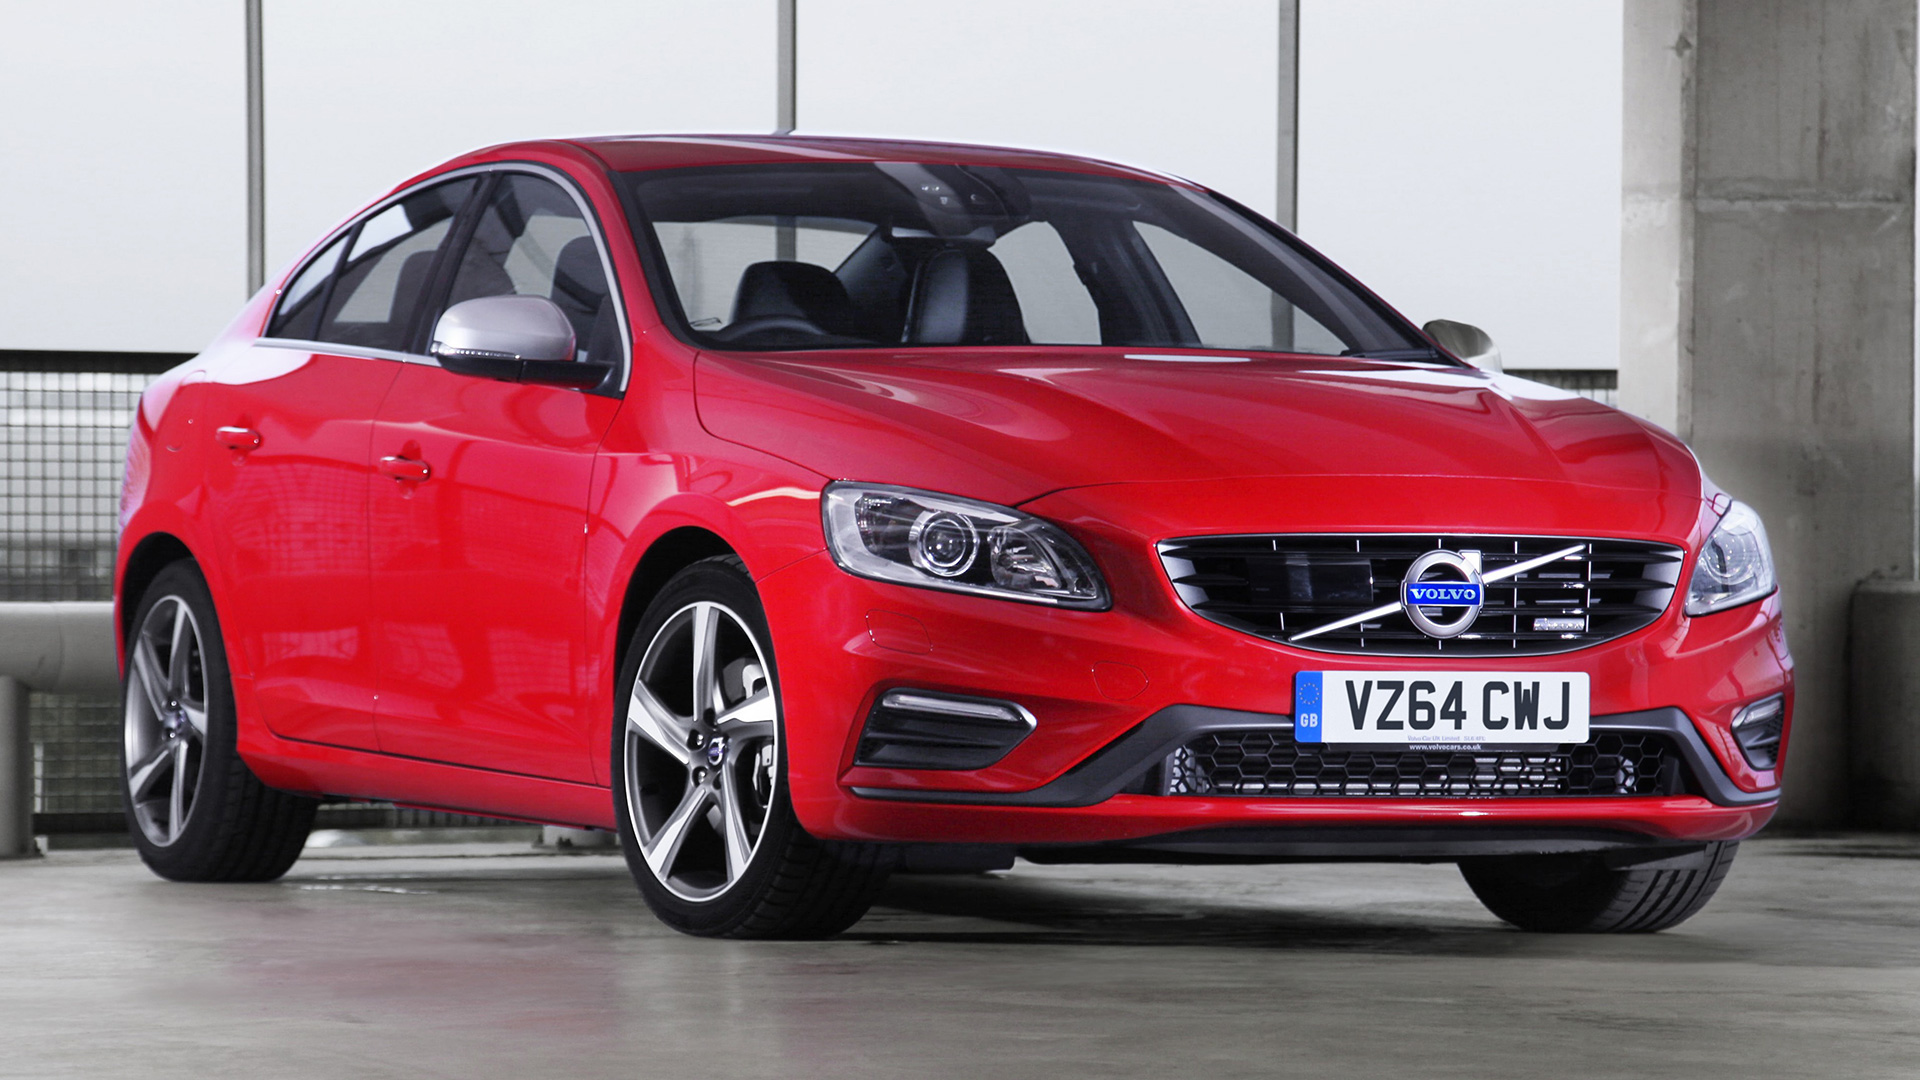 Volvo S60 For Sale >> New Used Volvo S60 Cars For Sale Auto Trader